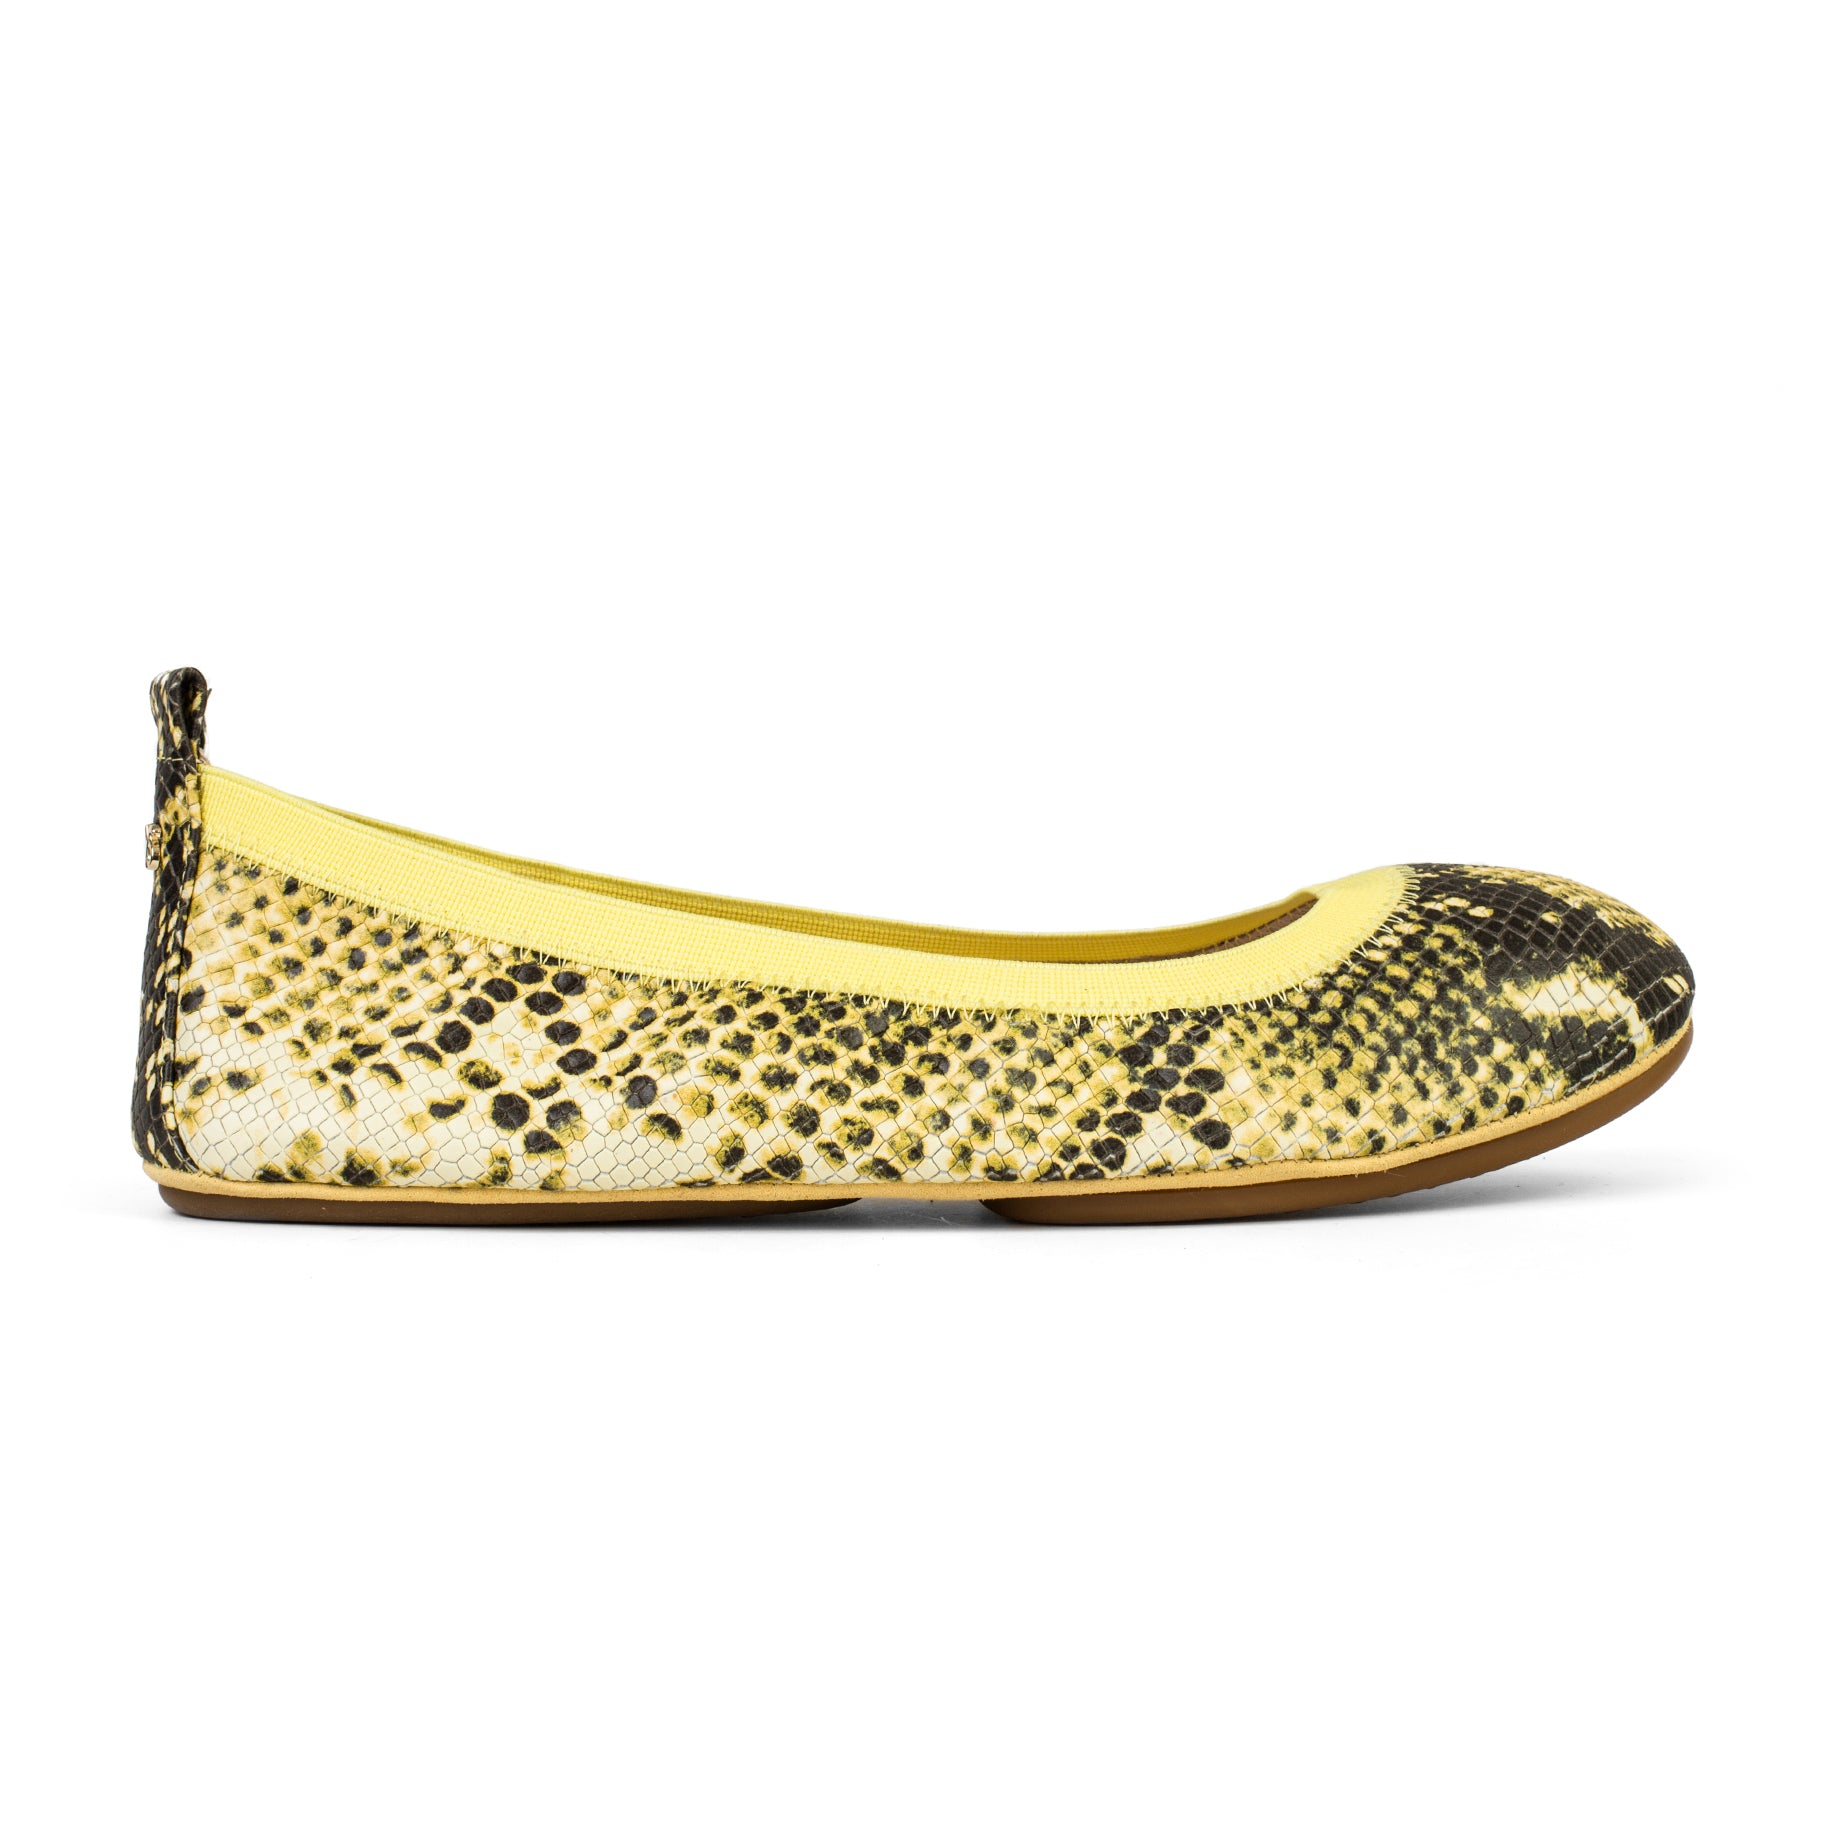 Yosi Samra Yellow Snake Print Leather Ballet Flat